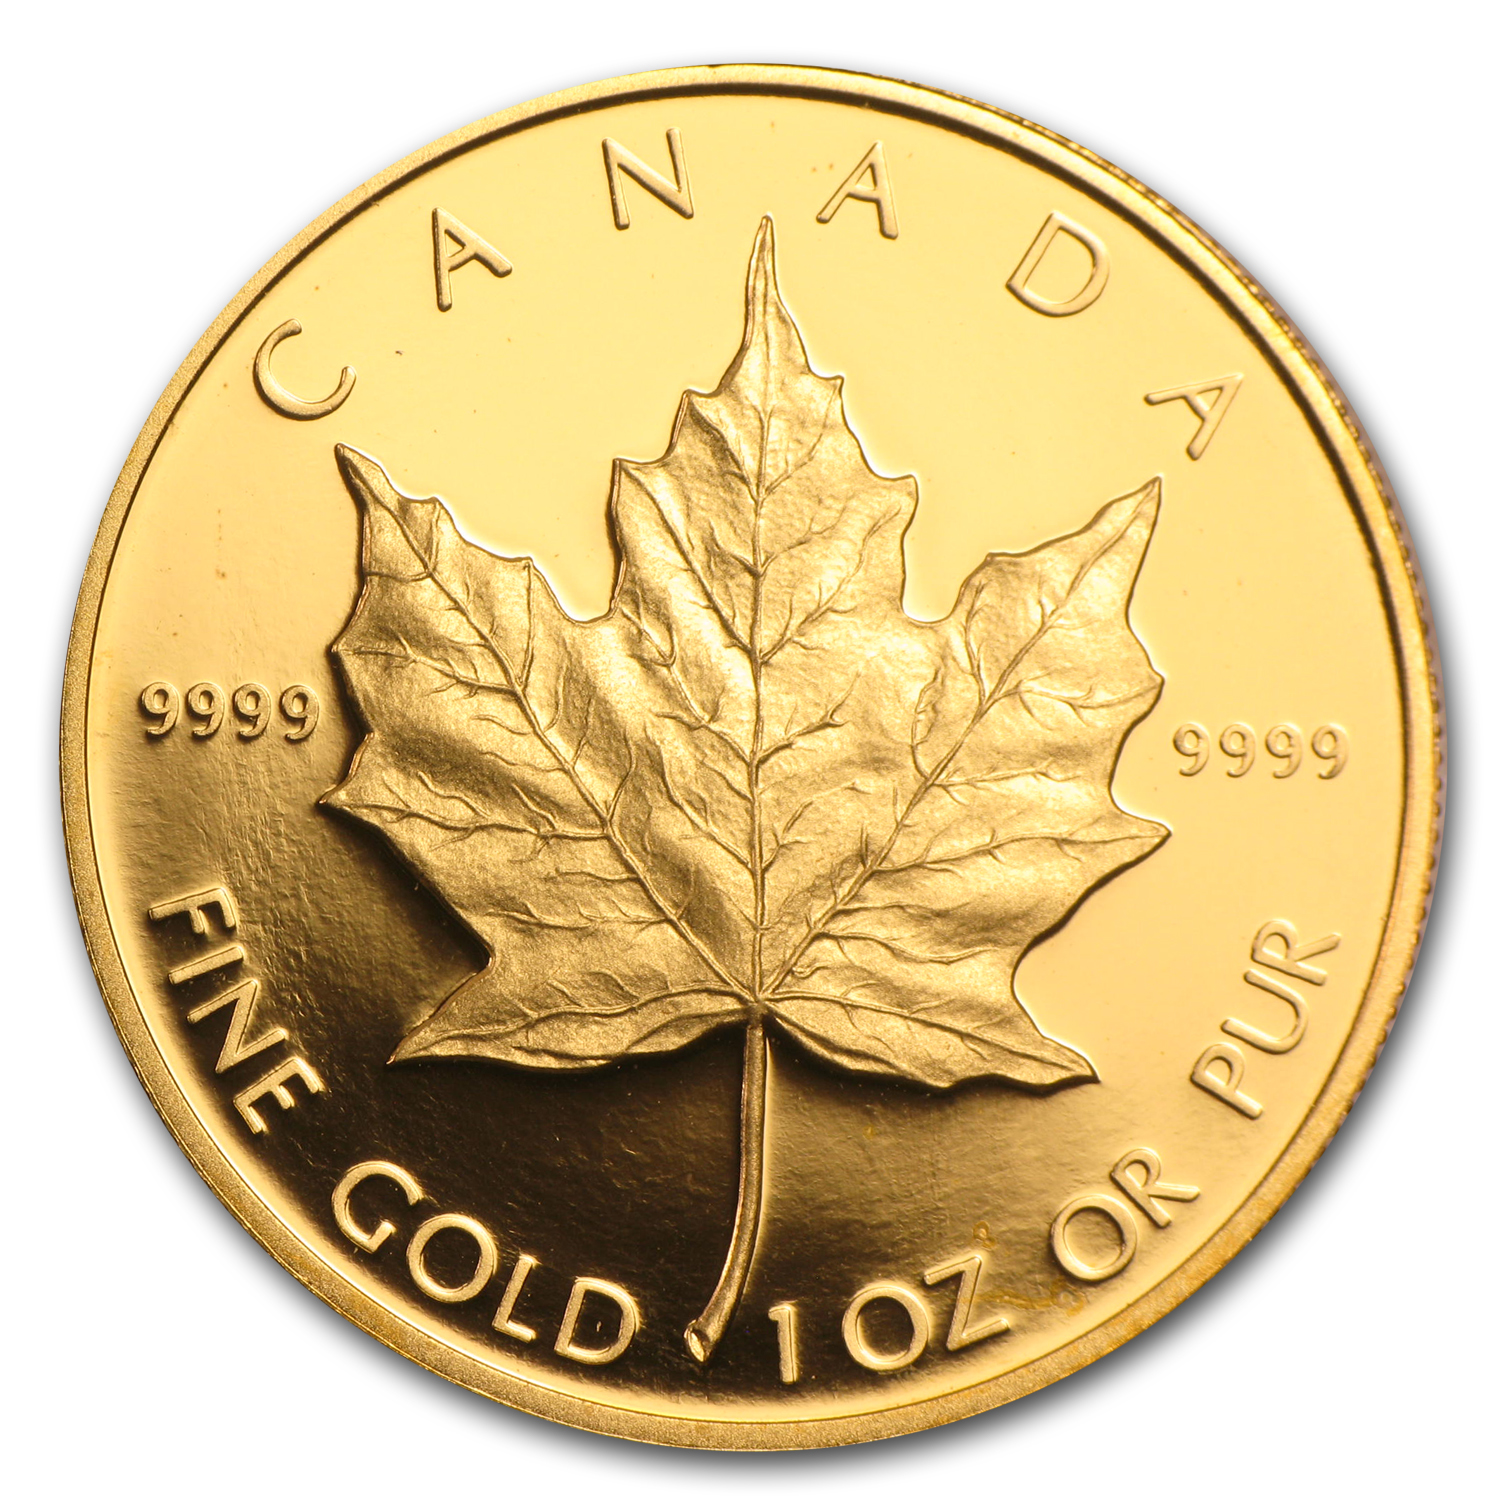 1989 Canada 1 oz Proof Gold Maple Leaf (w/Box & COA)